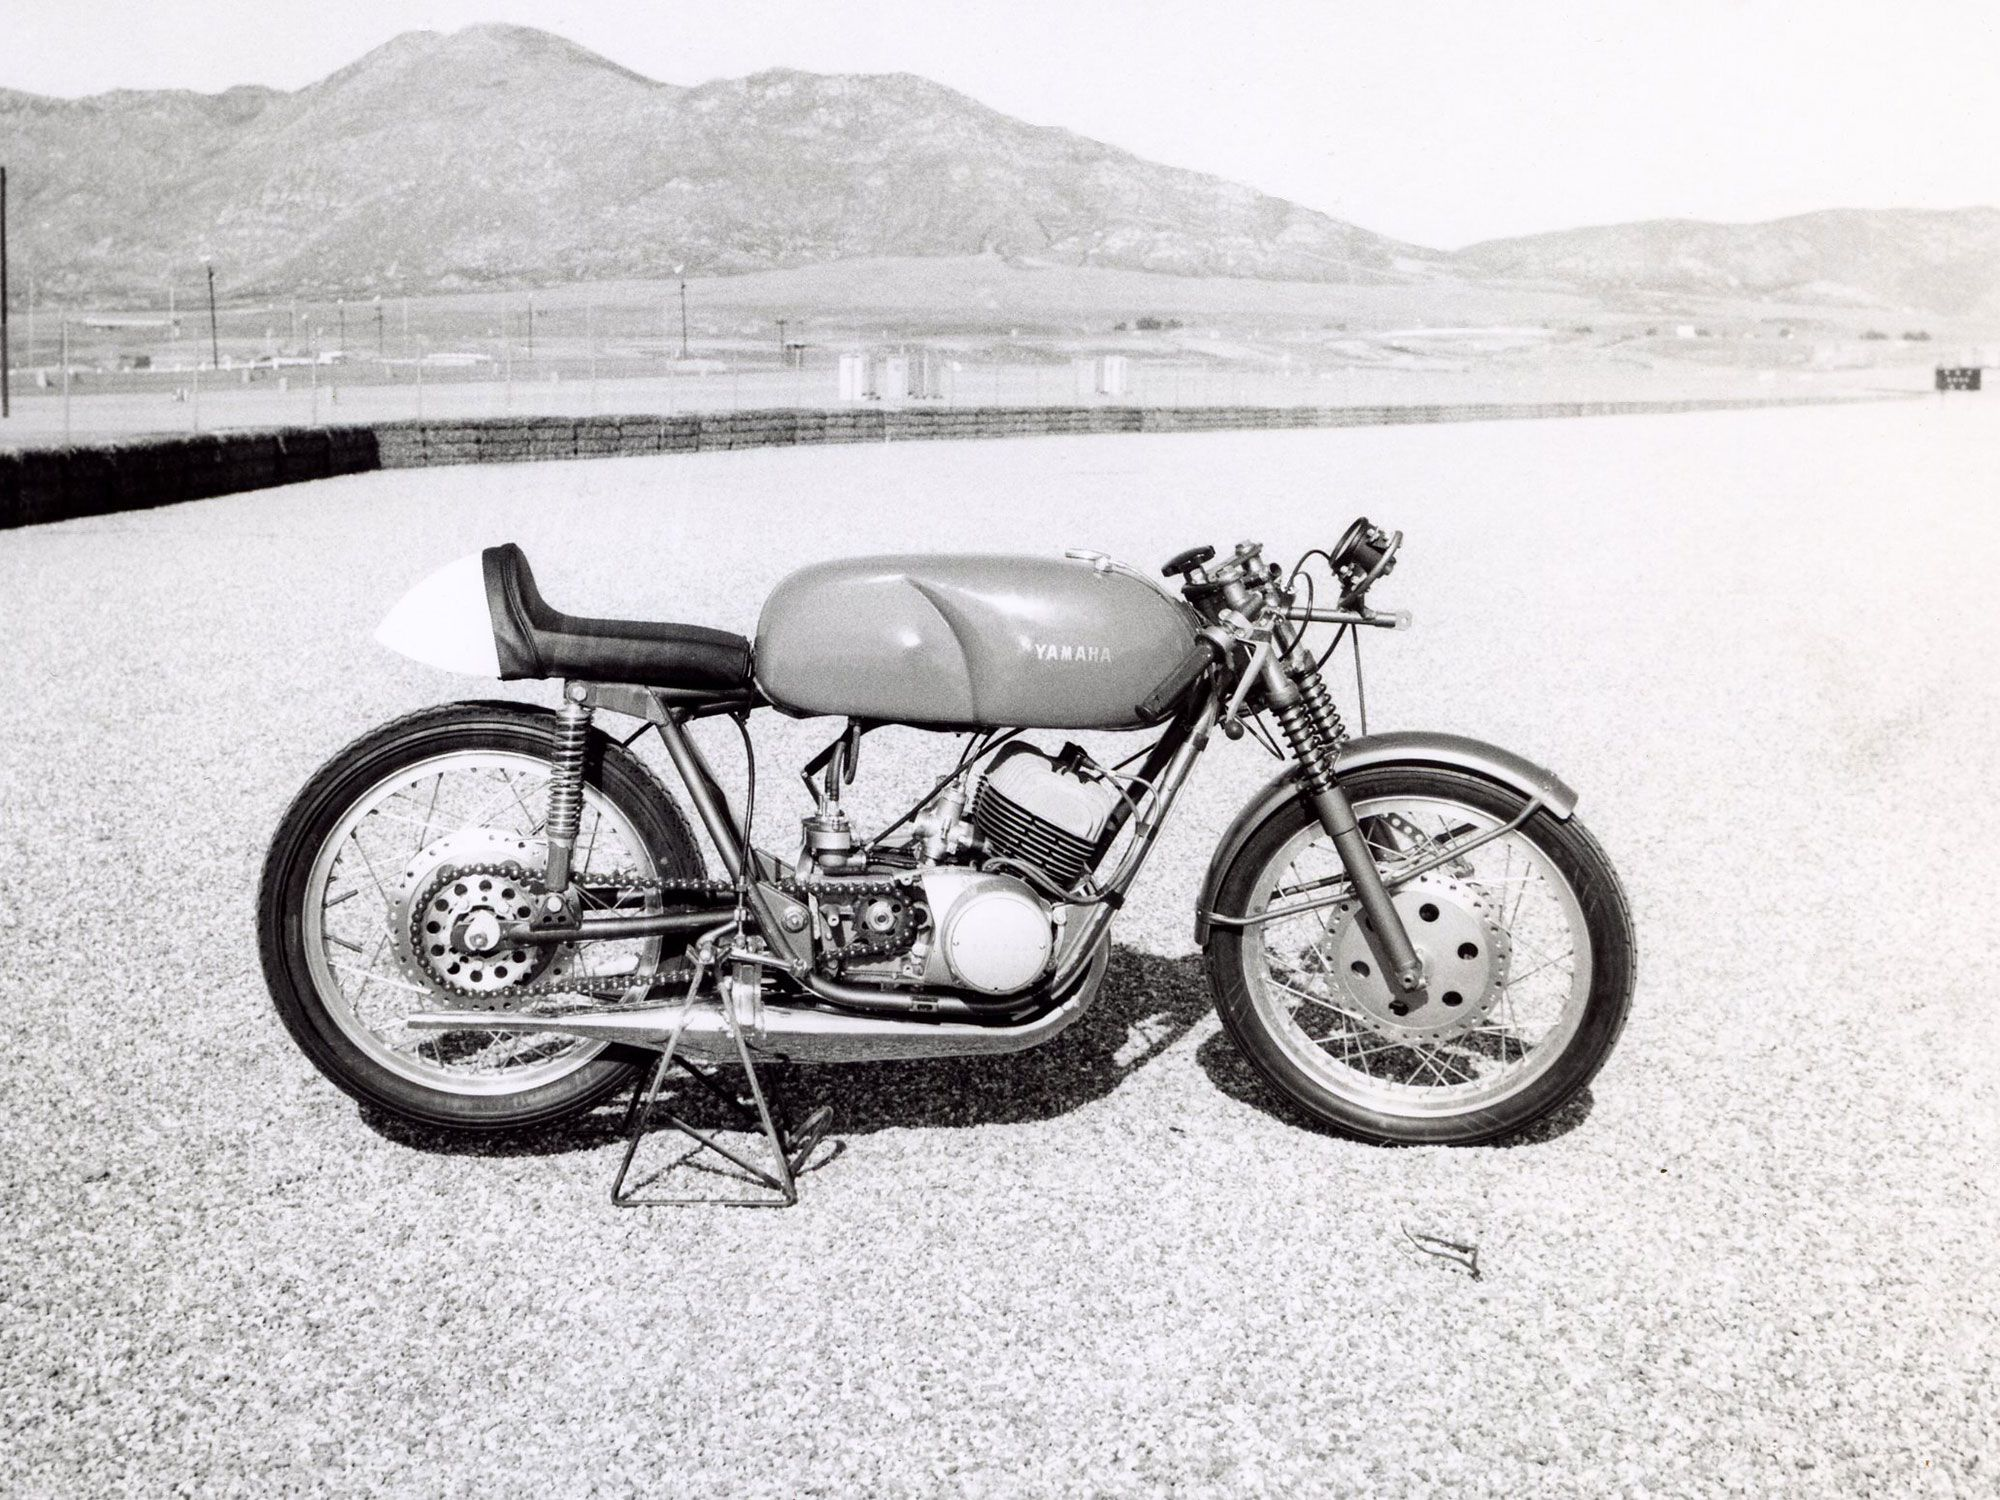 As the US motorcycle market in the late '60s exploded, Japanese motorcycles rose to the top. Yamaha's TD-1 was one of the first to be competitive with the English and American racers.